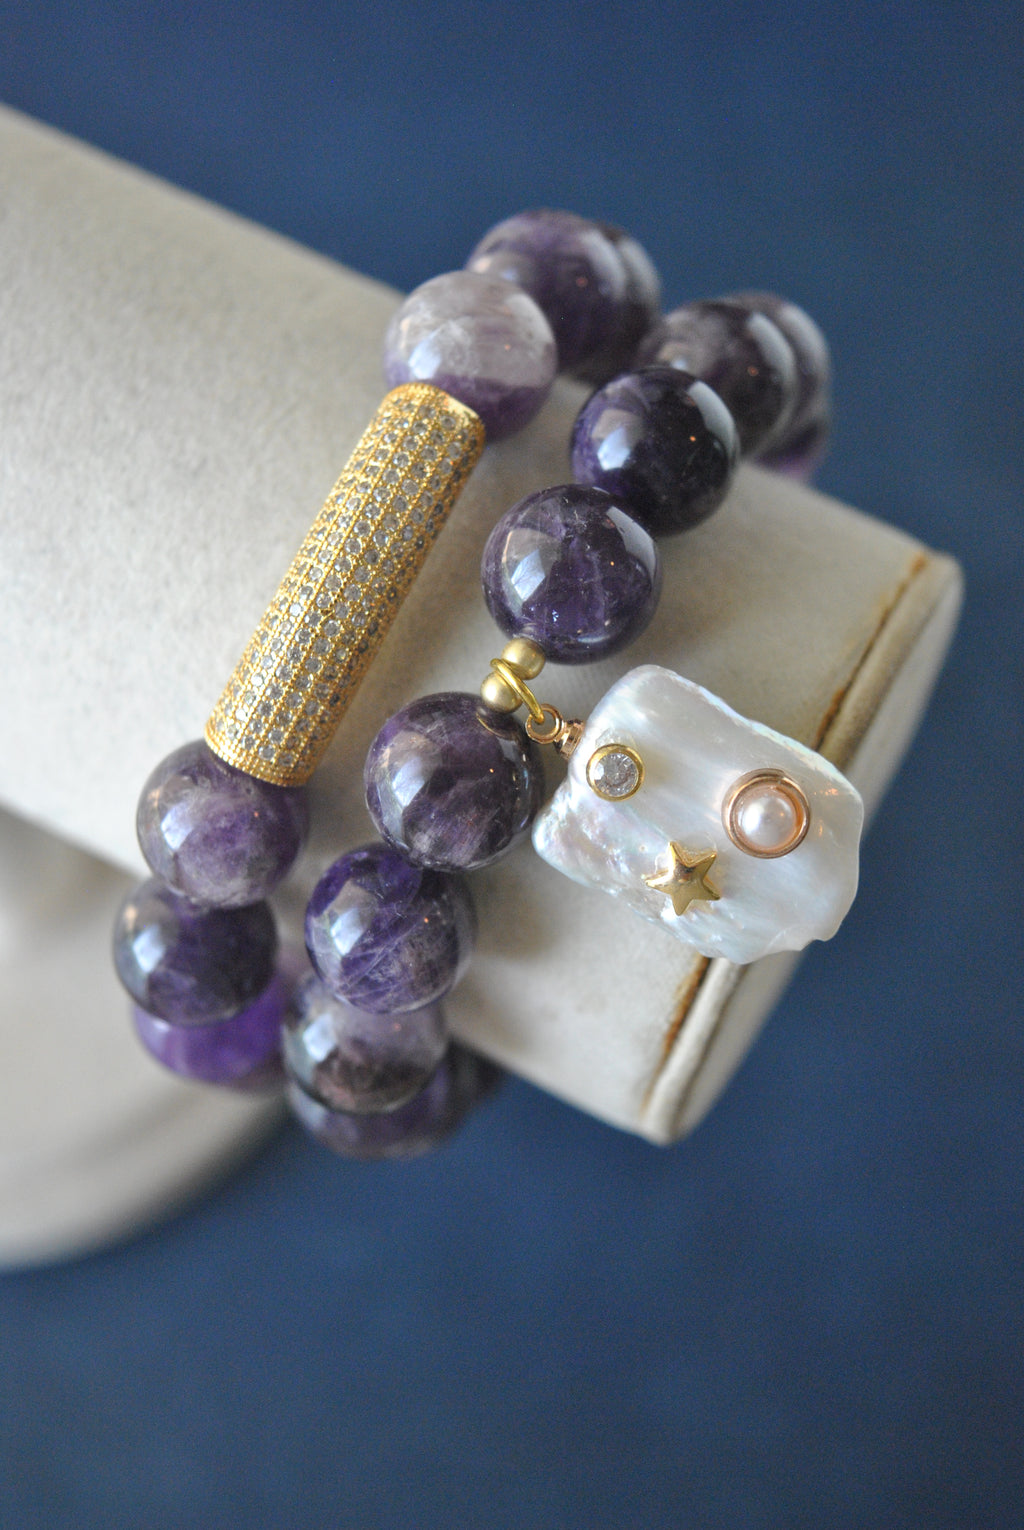 AMETHYST ON GOLD AND PEARL CHARM STRECHY BRACELETS SET